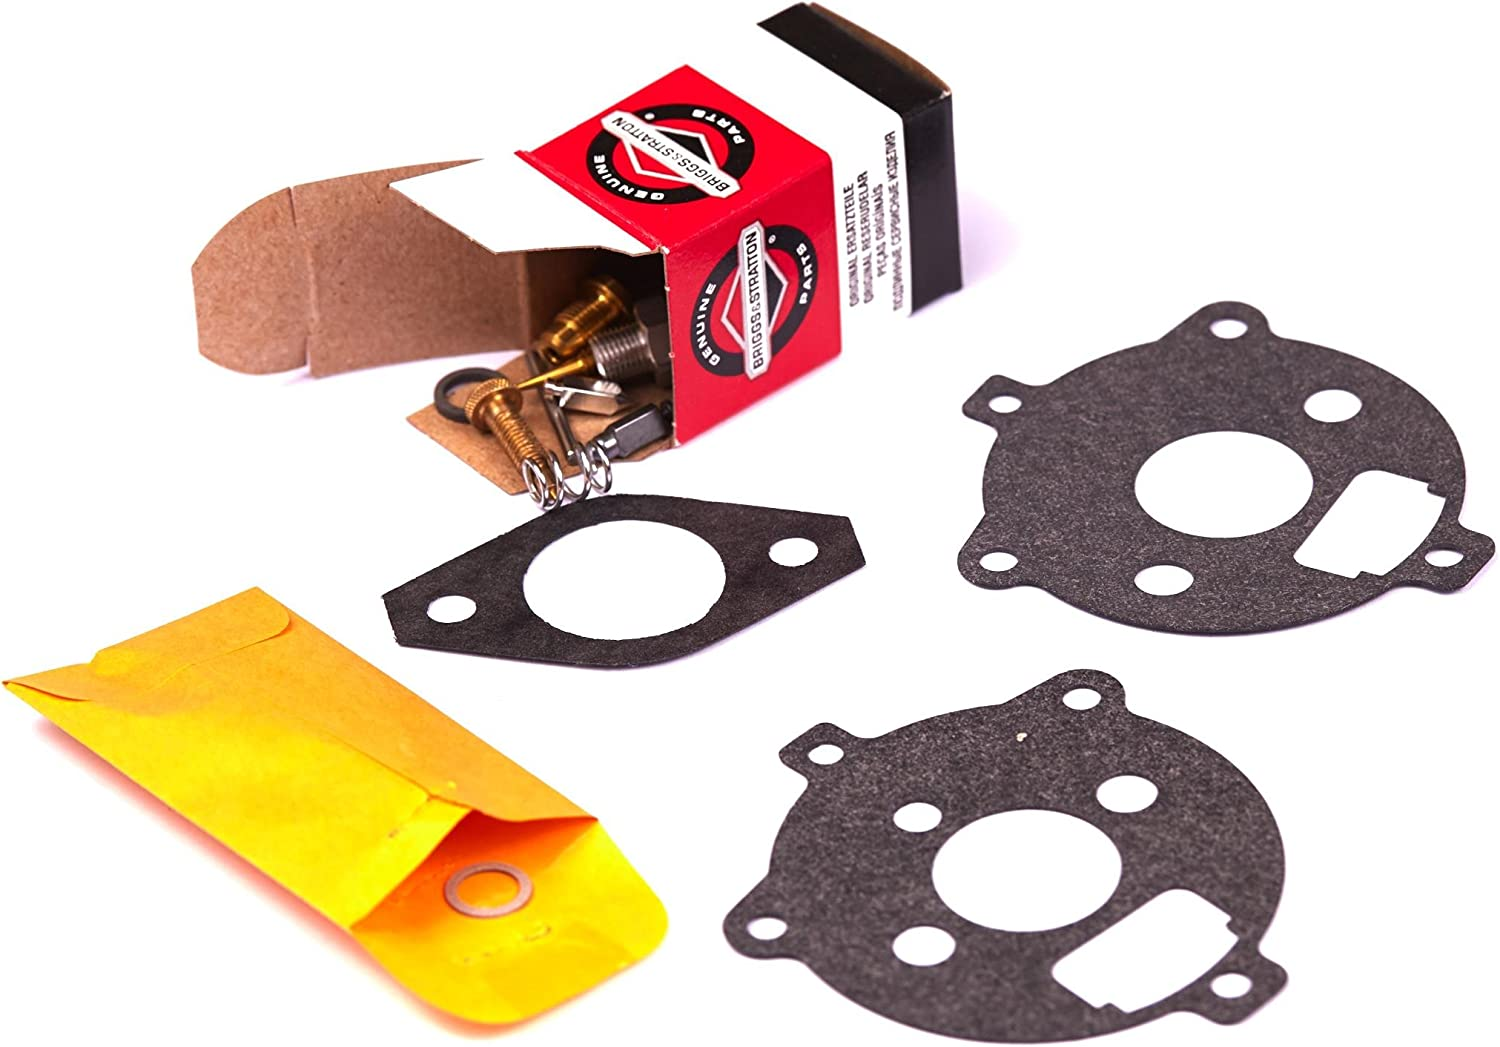 Briggs & Stratton 394693 Carburetor Overhaul Kit